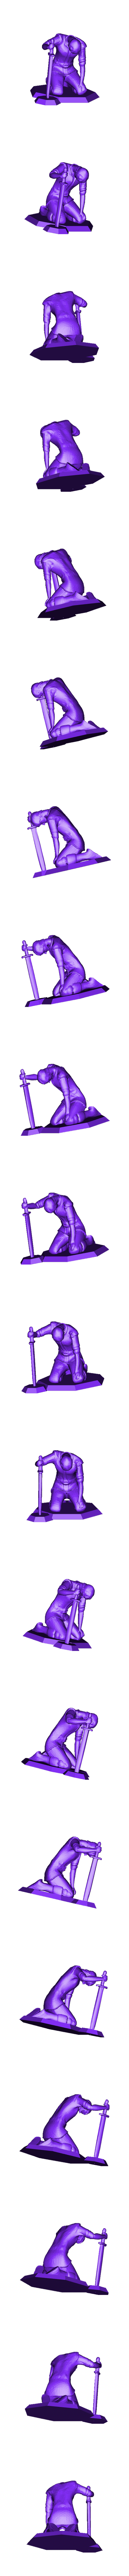 YoungLord_KneelingWithSword_v2.stl Download free STL file Young Hero (multiple poses) • 3D print object, stockto